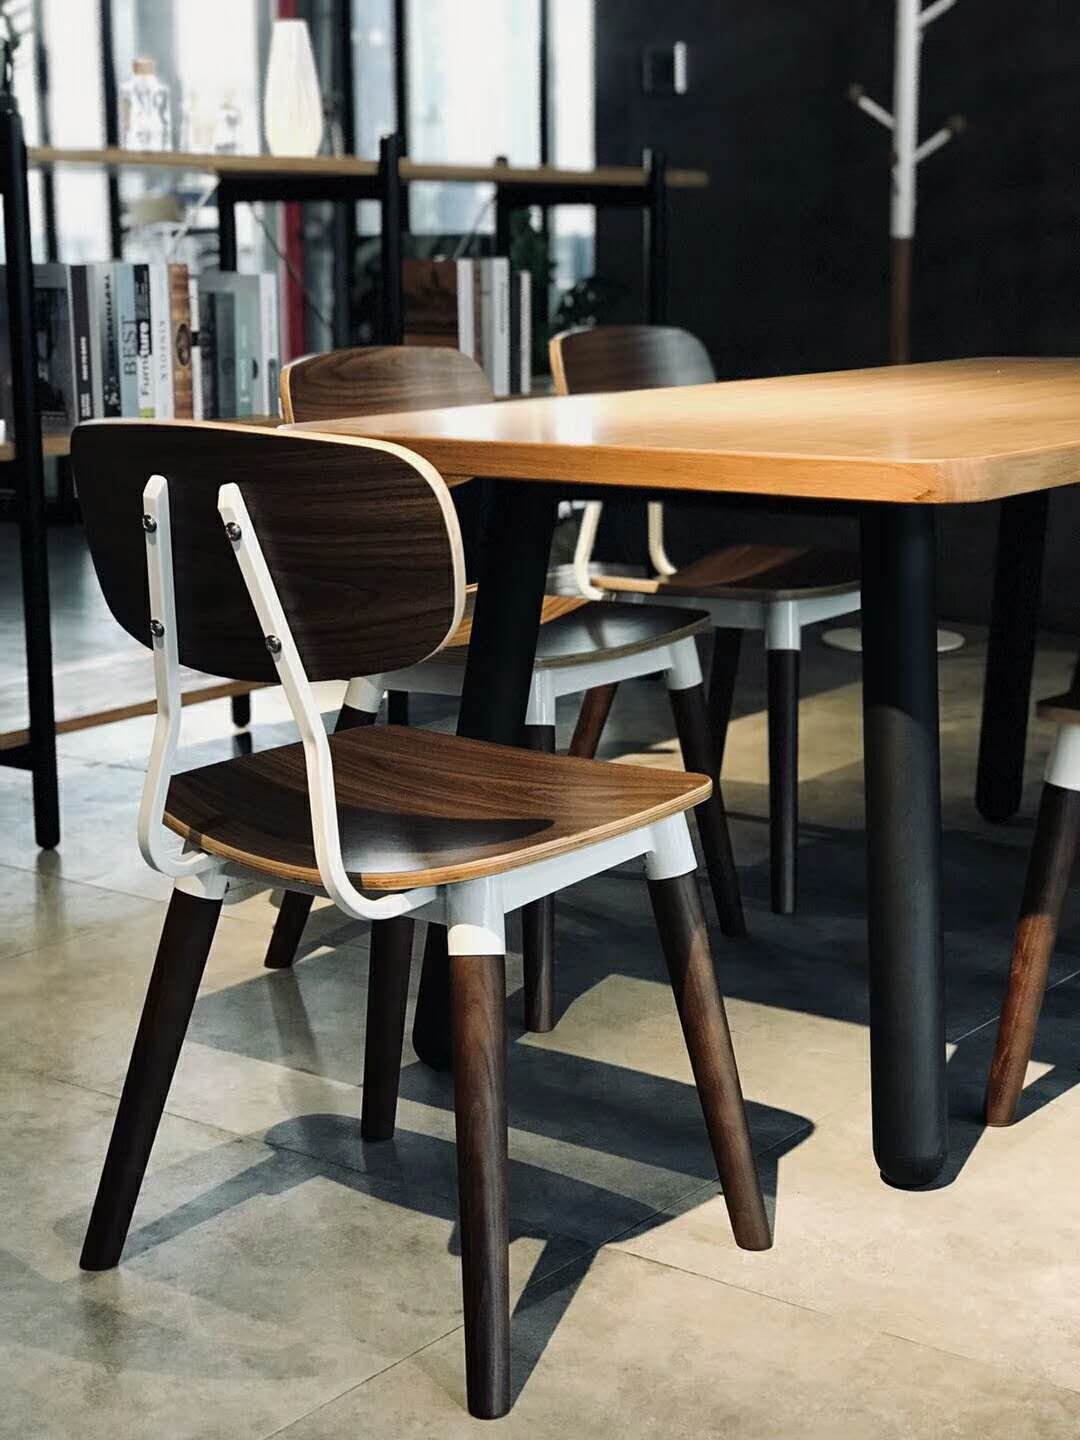 Tuwell-How to choose the best table and chair for dinning room in the house or for your literary cof-2